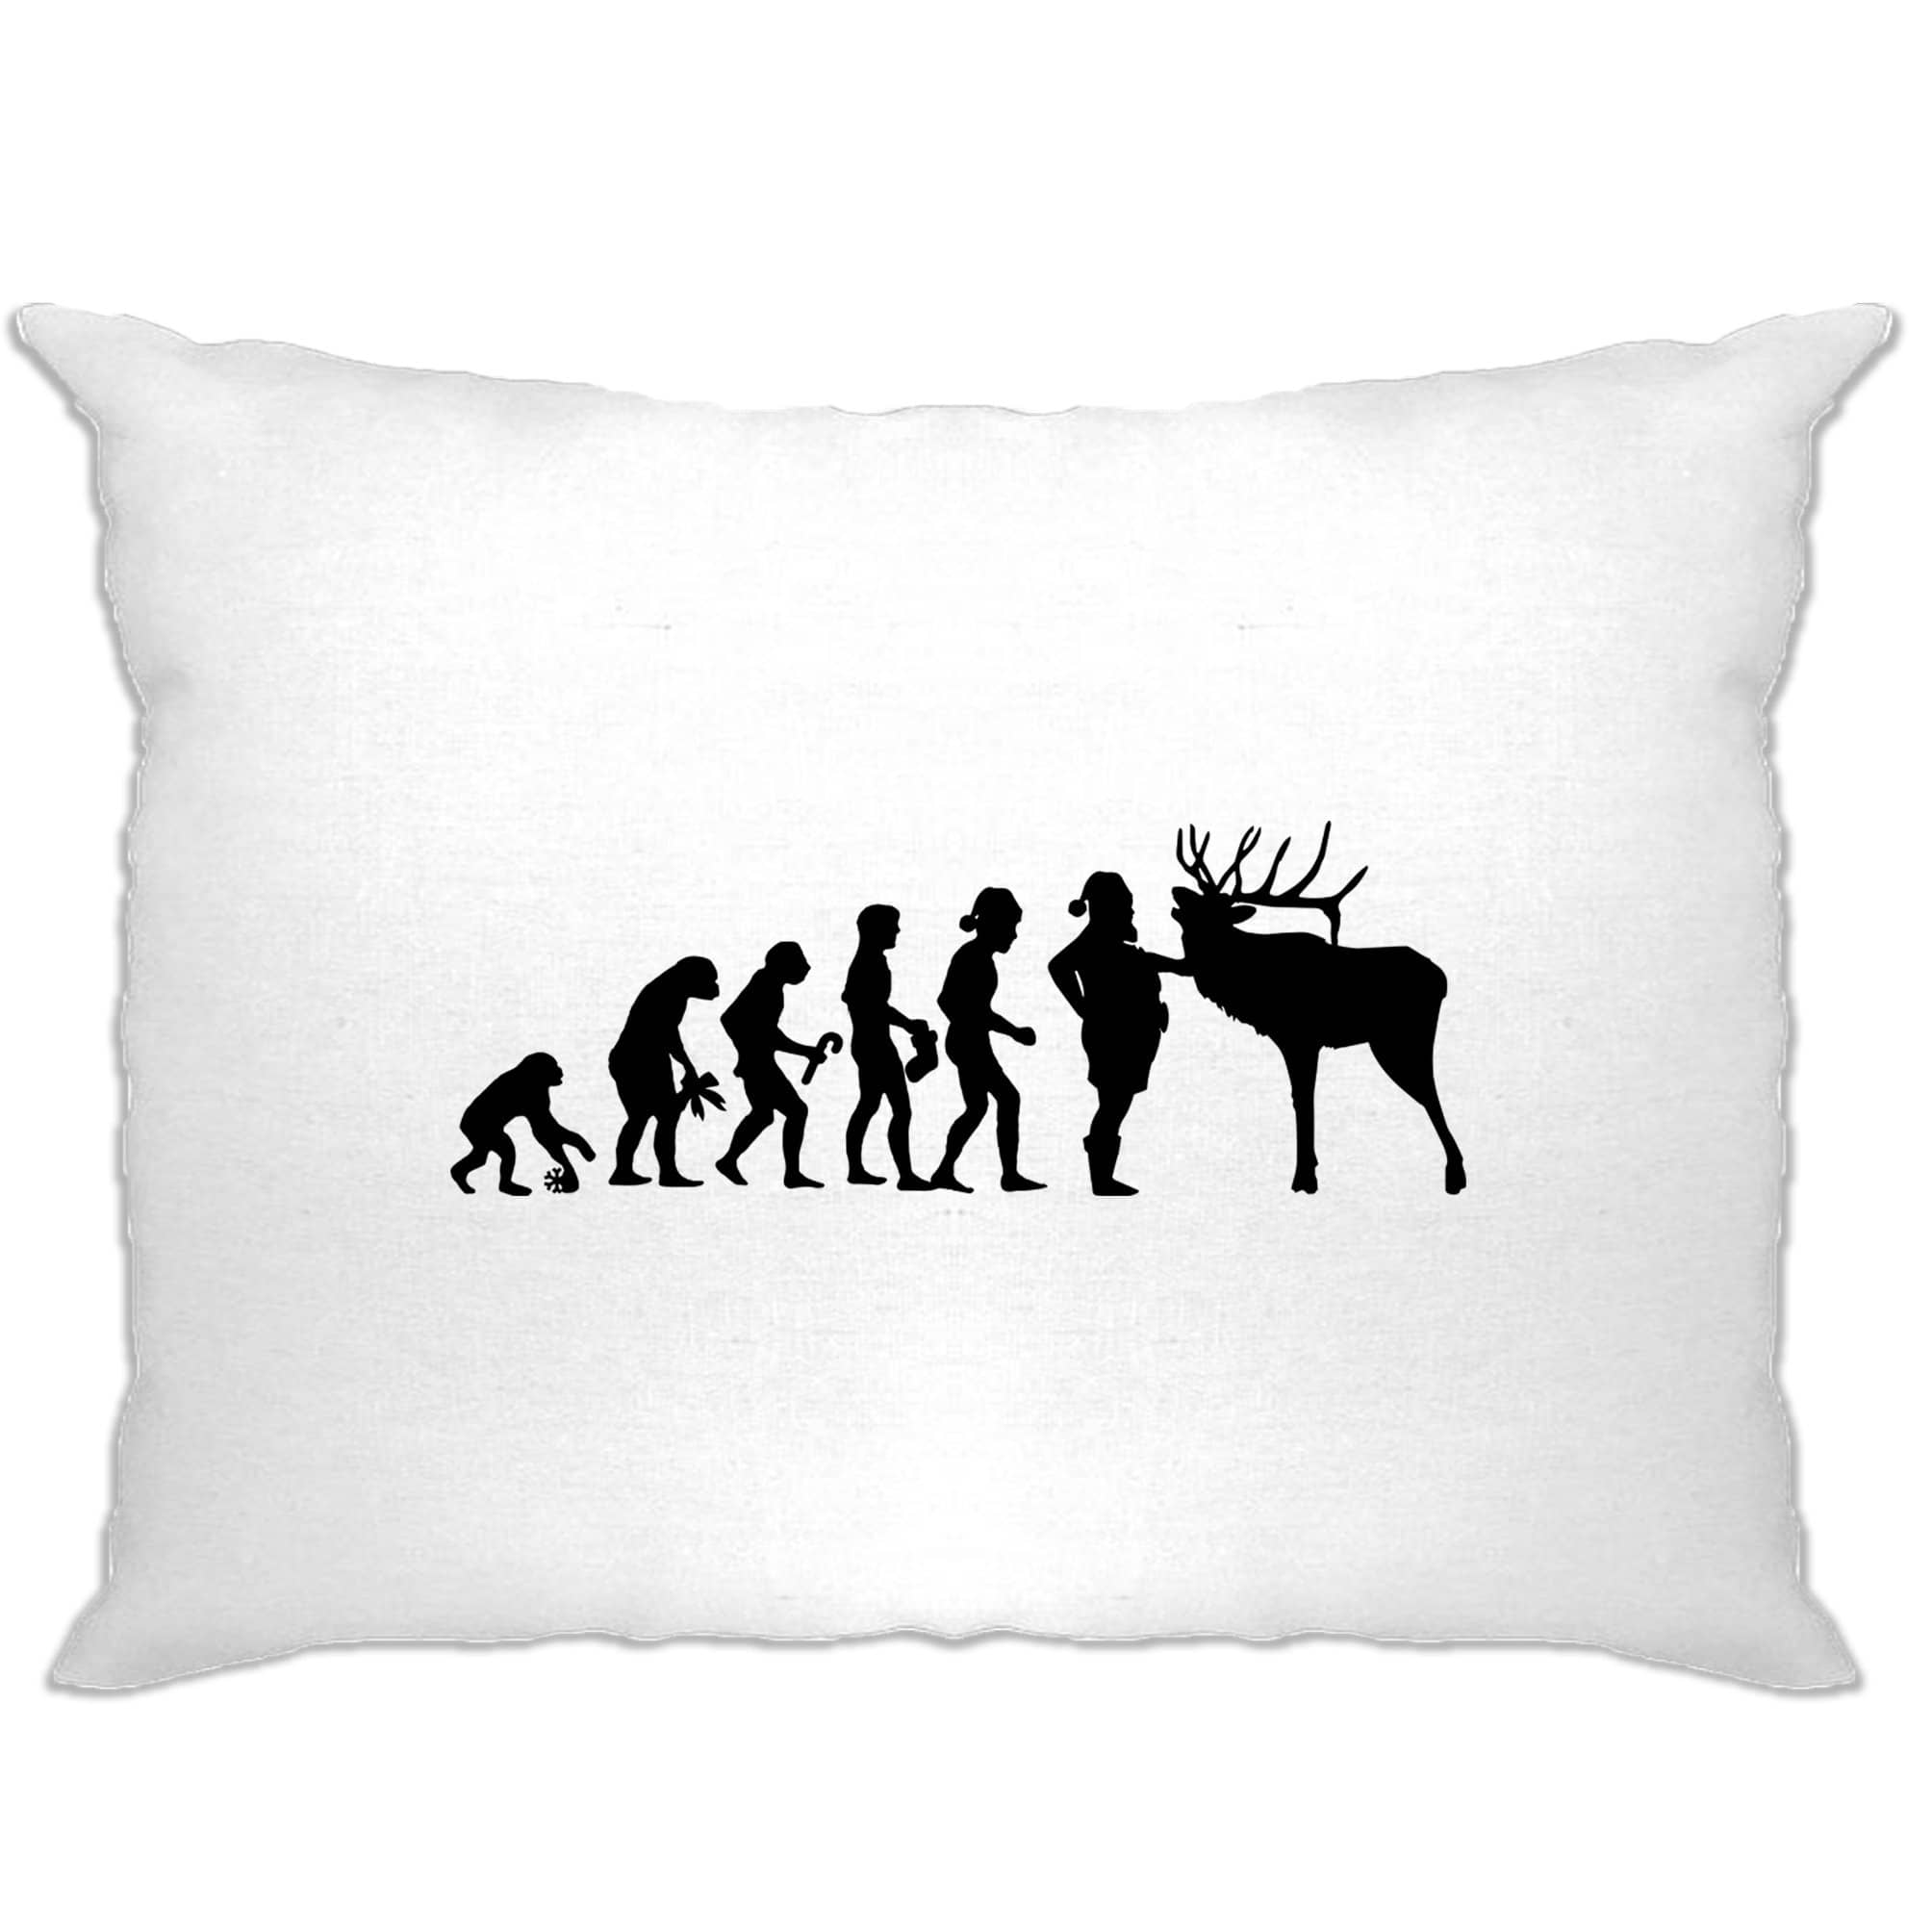 Funny Christmas Pillow Case The Evolution Of Xmas Holiday